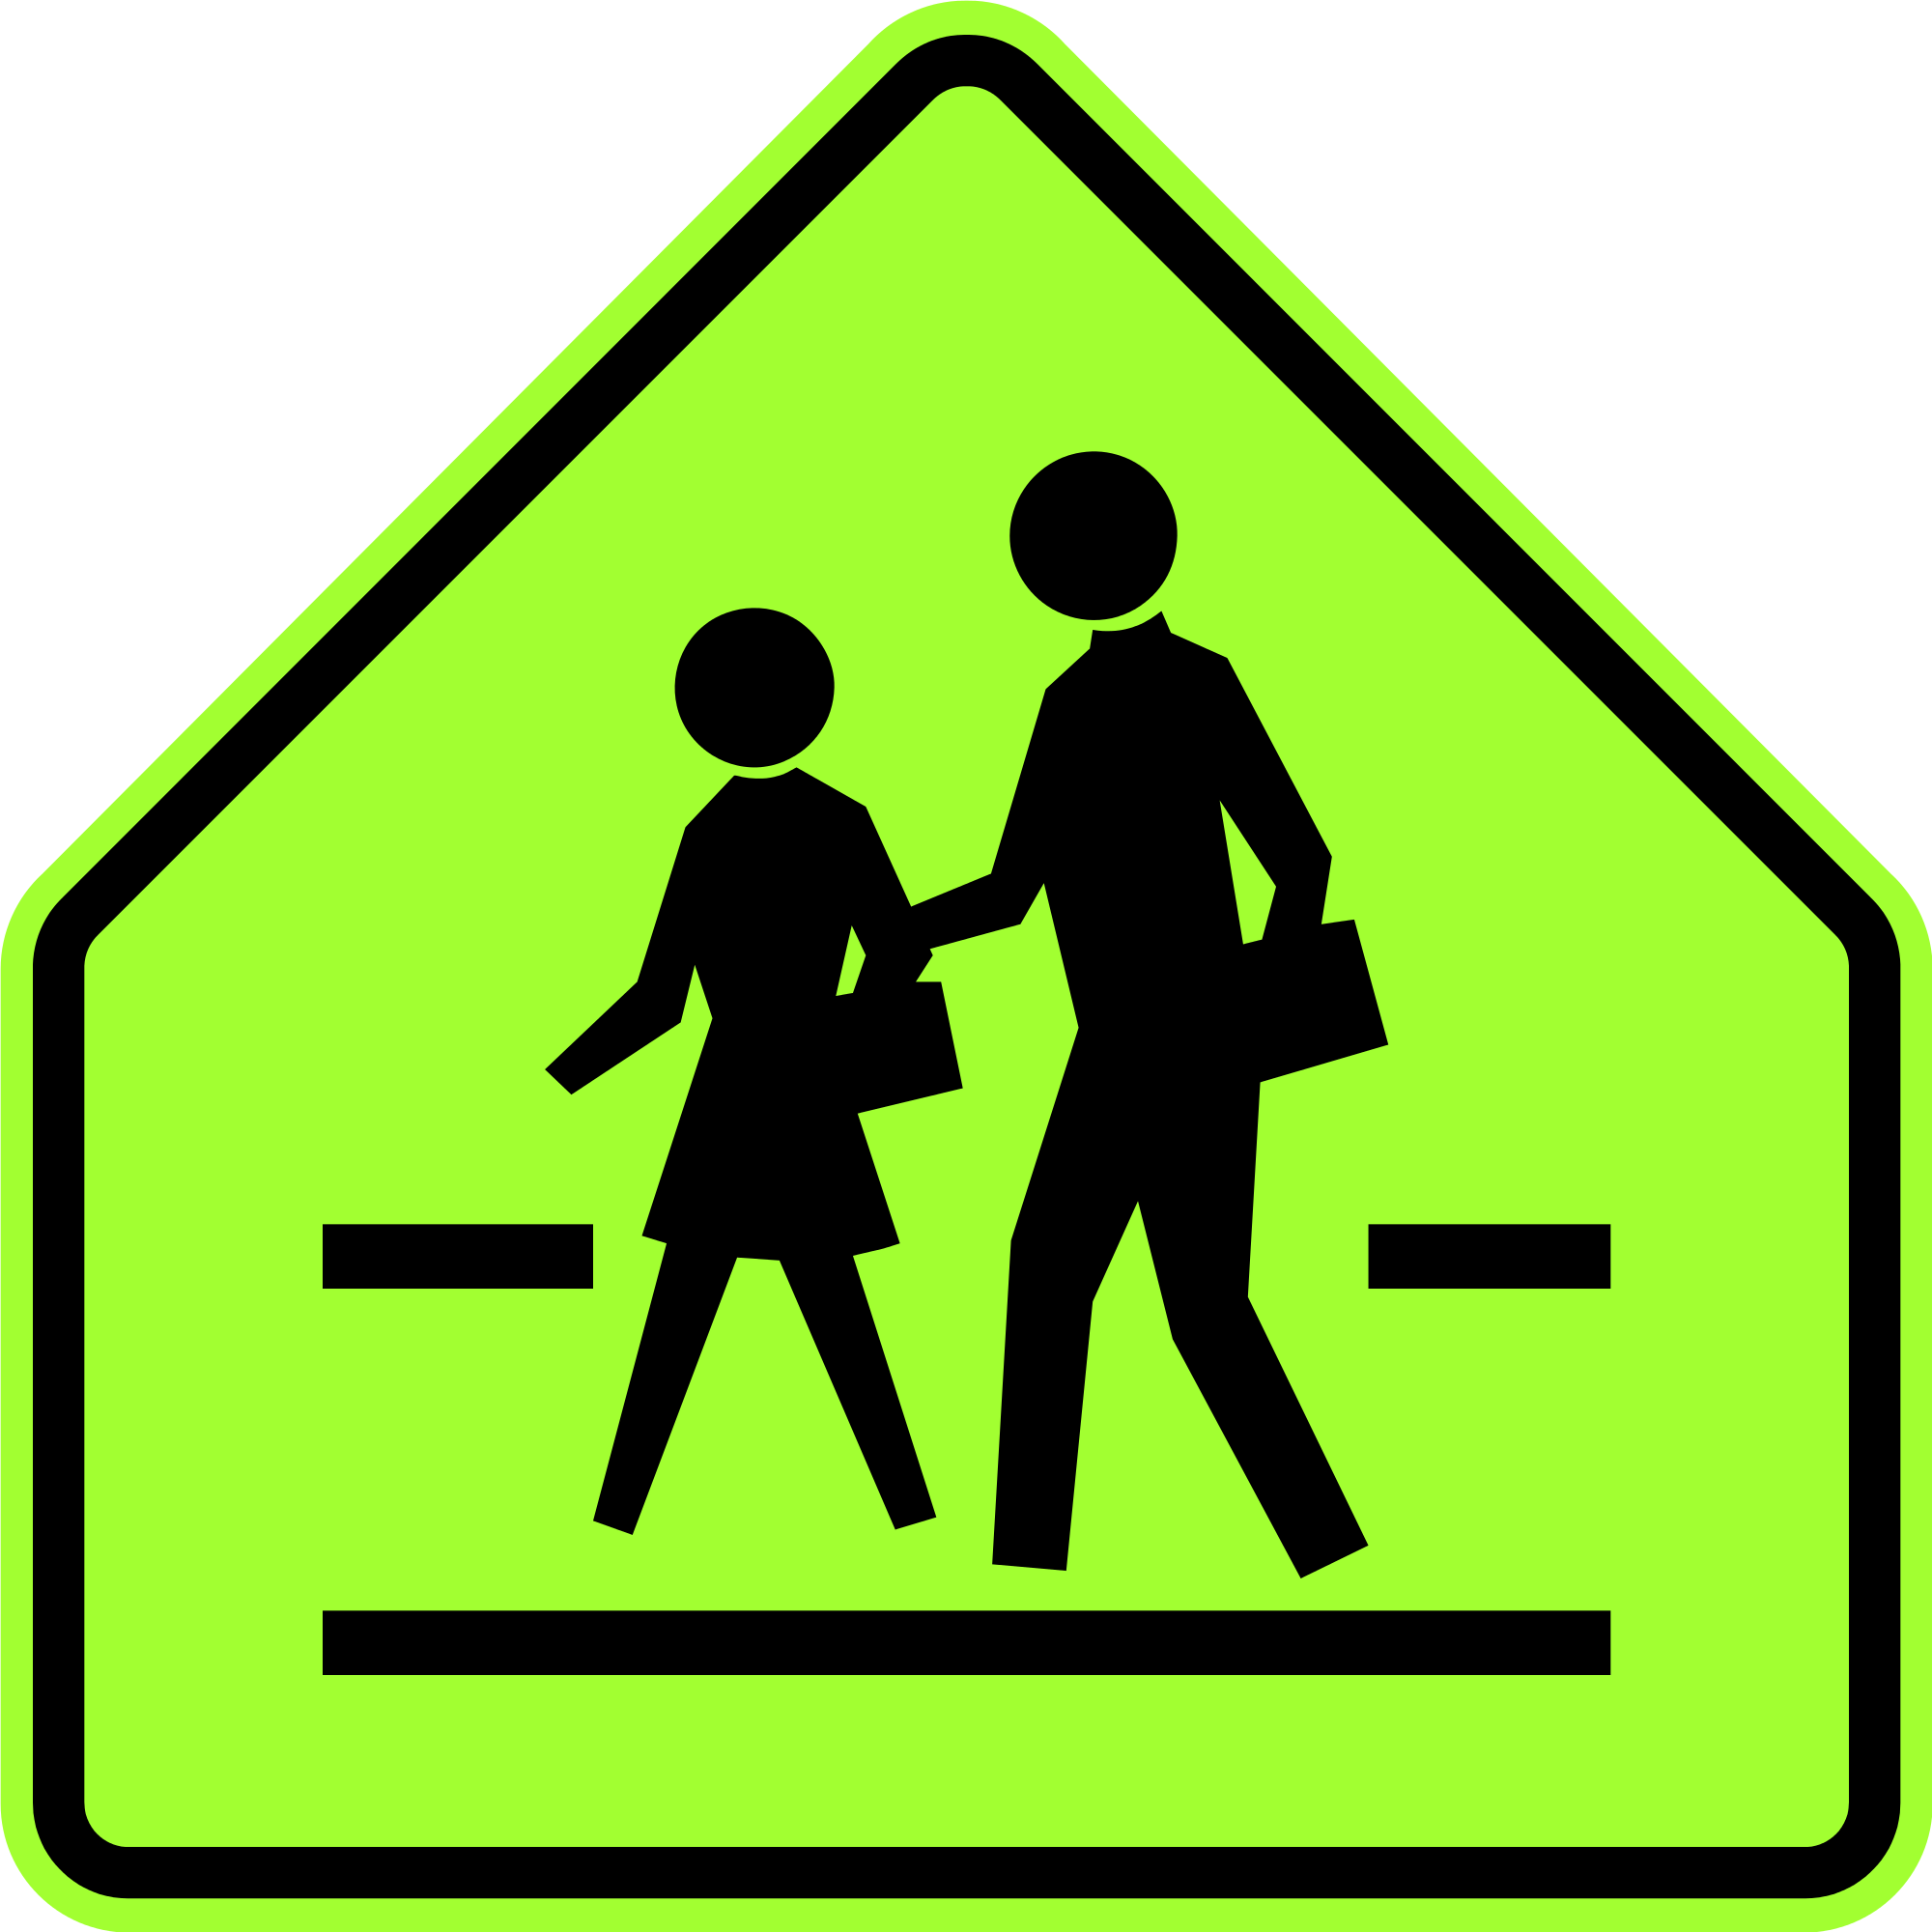 File philippines sign w. Clipart road road marking